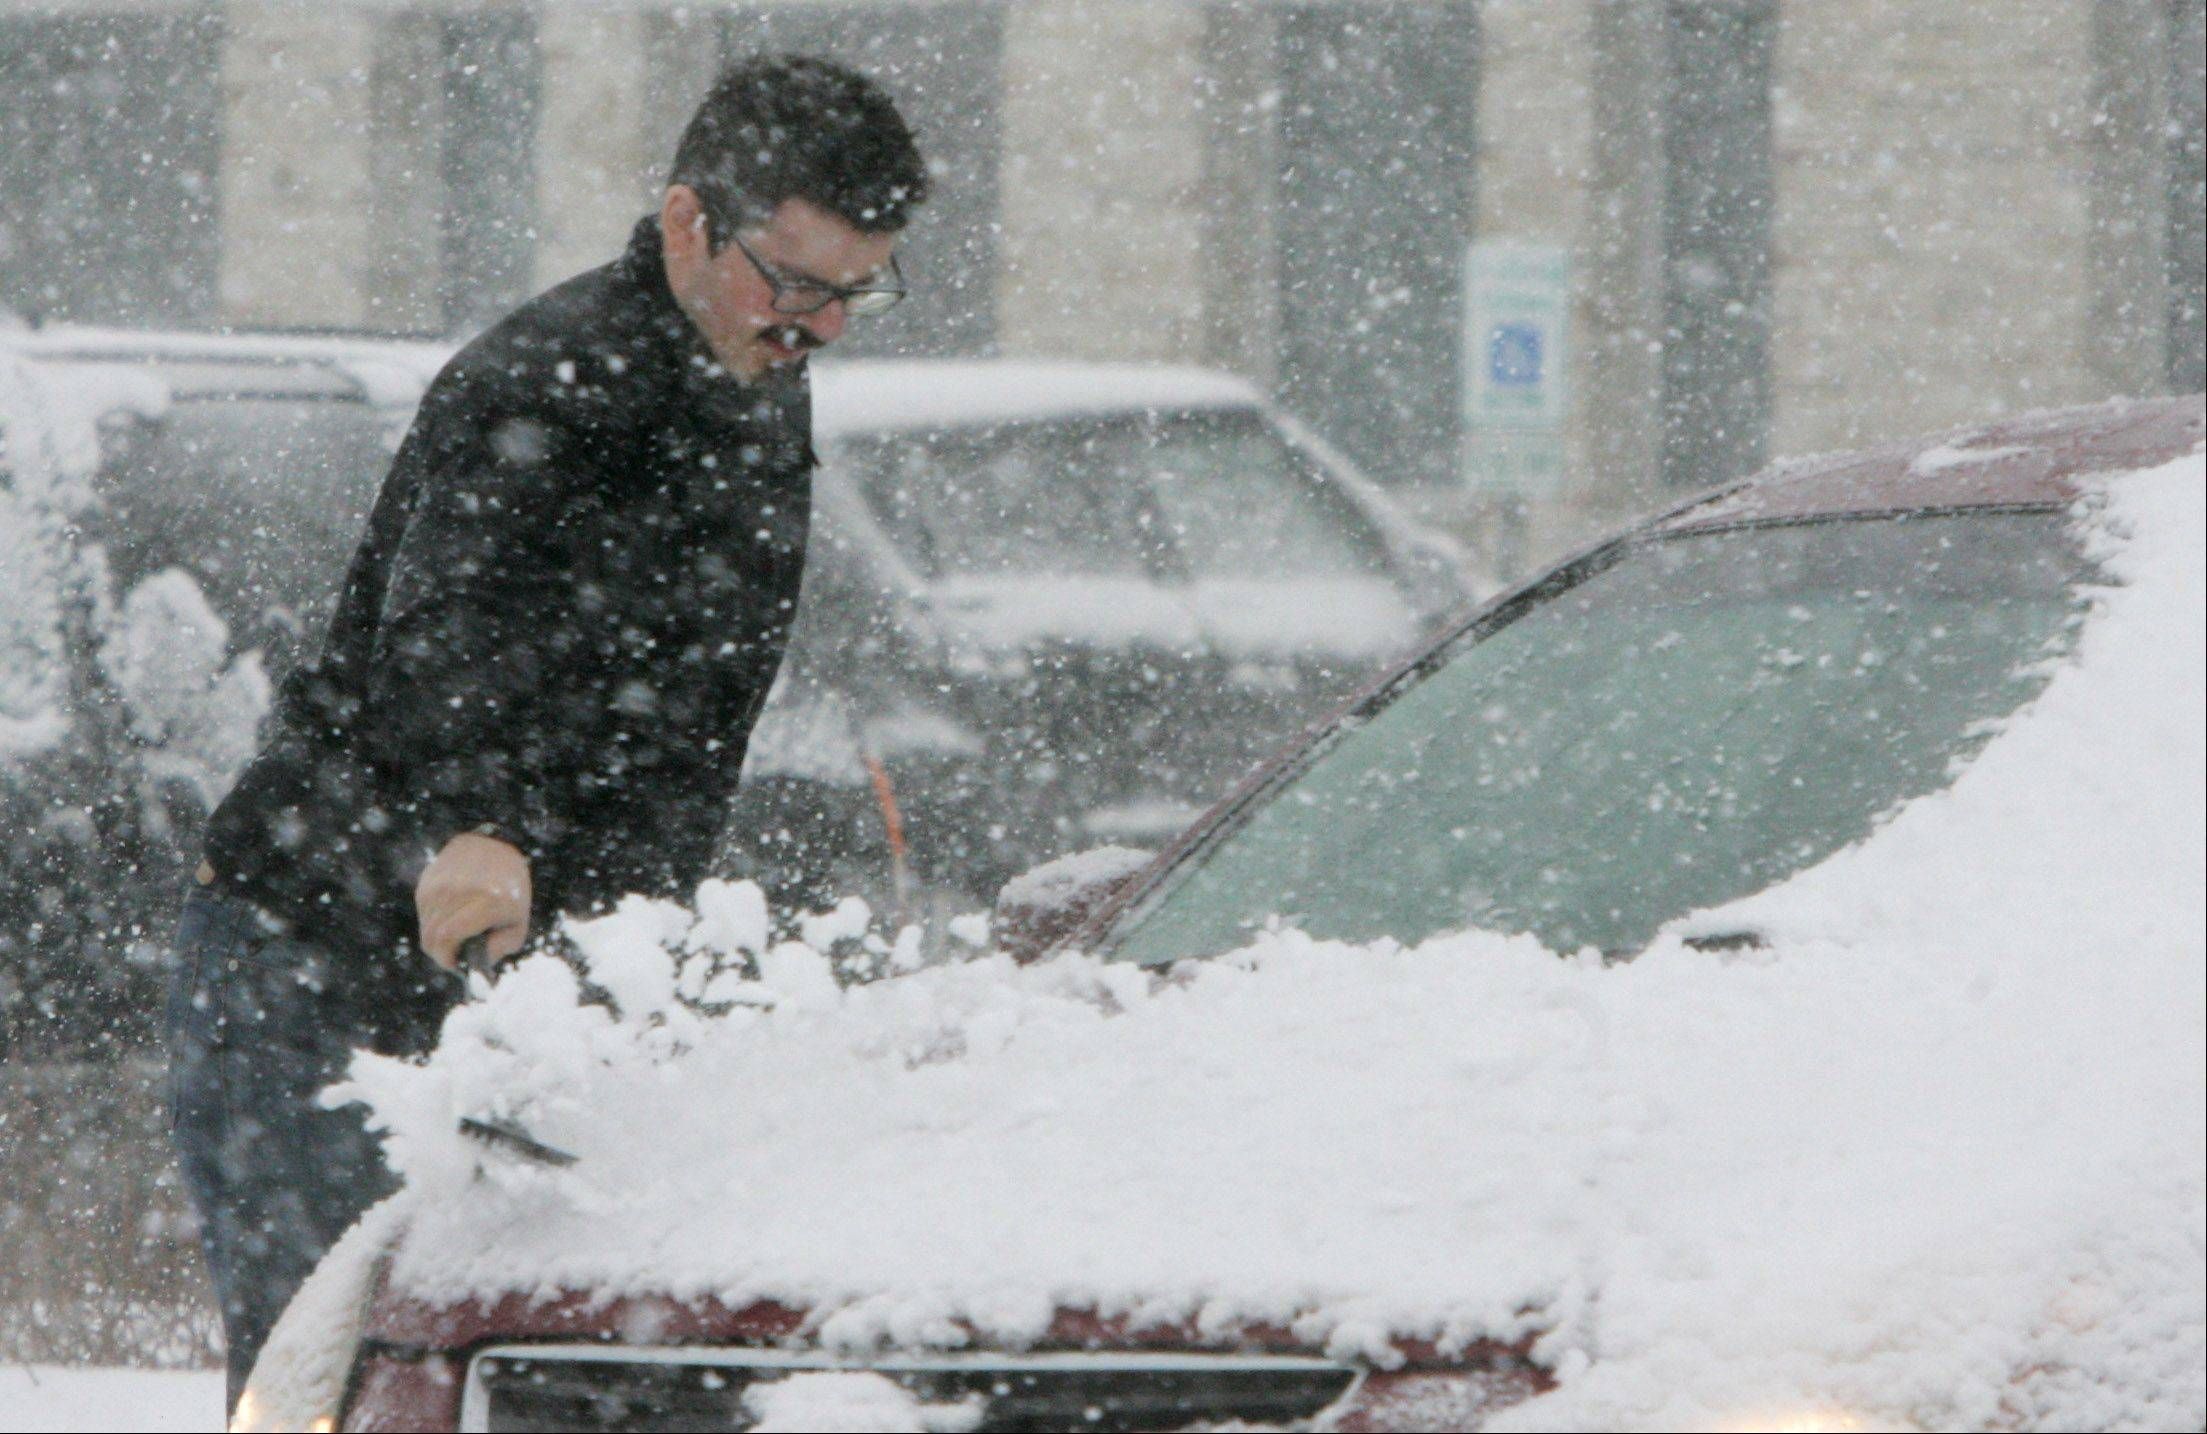 Alex Vazic, of Libertyville, clears the snow from his car in Vernon Hills during the snowstorm that hit Lake County on Tuesday. The blizzard was expected to drop up to six inches of snow in the area.